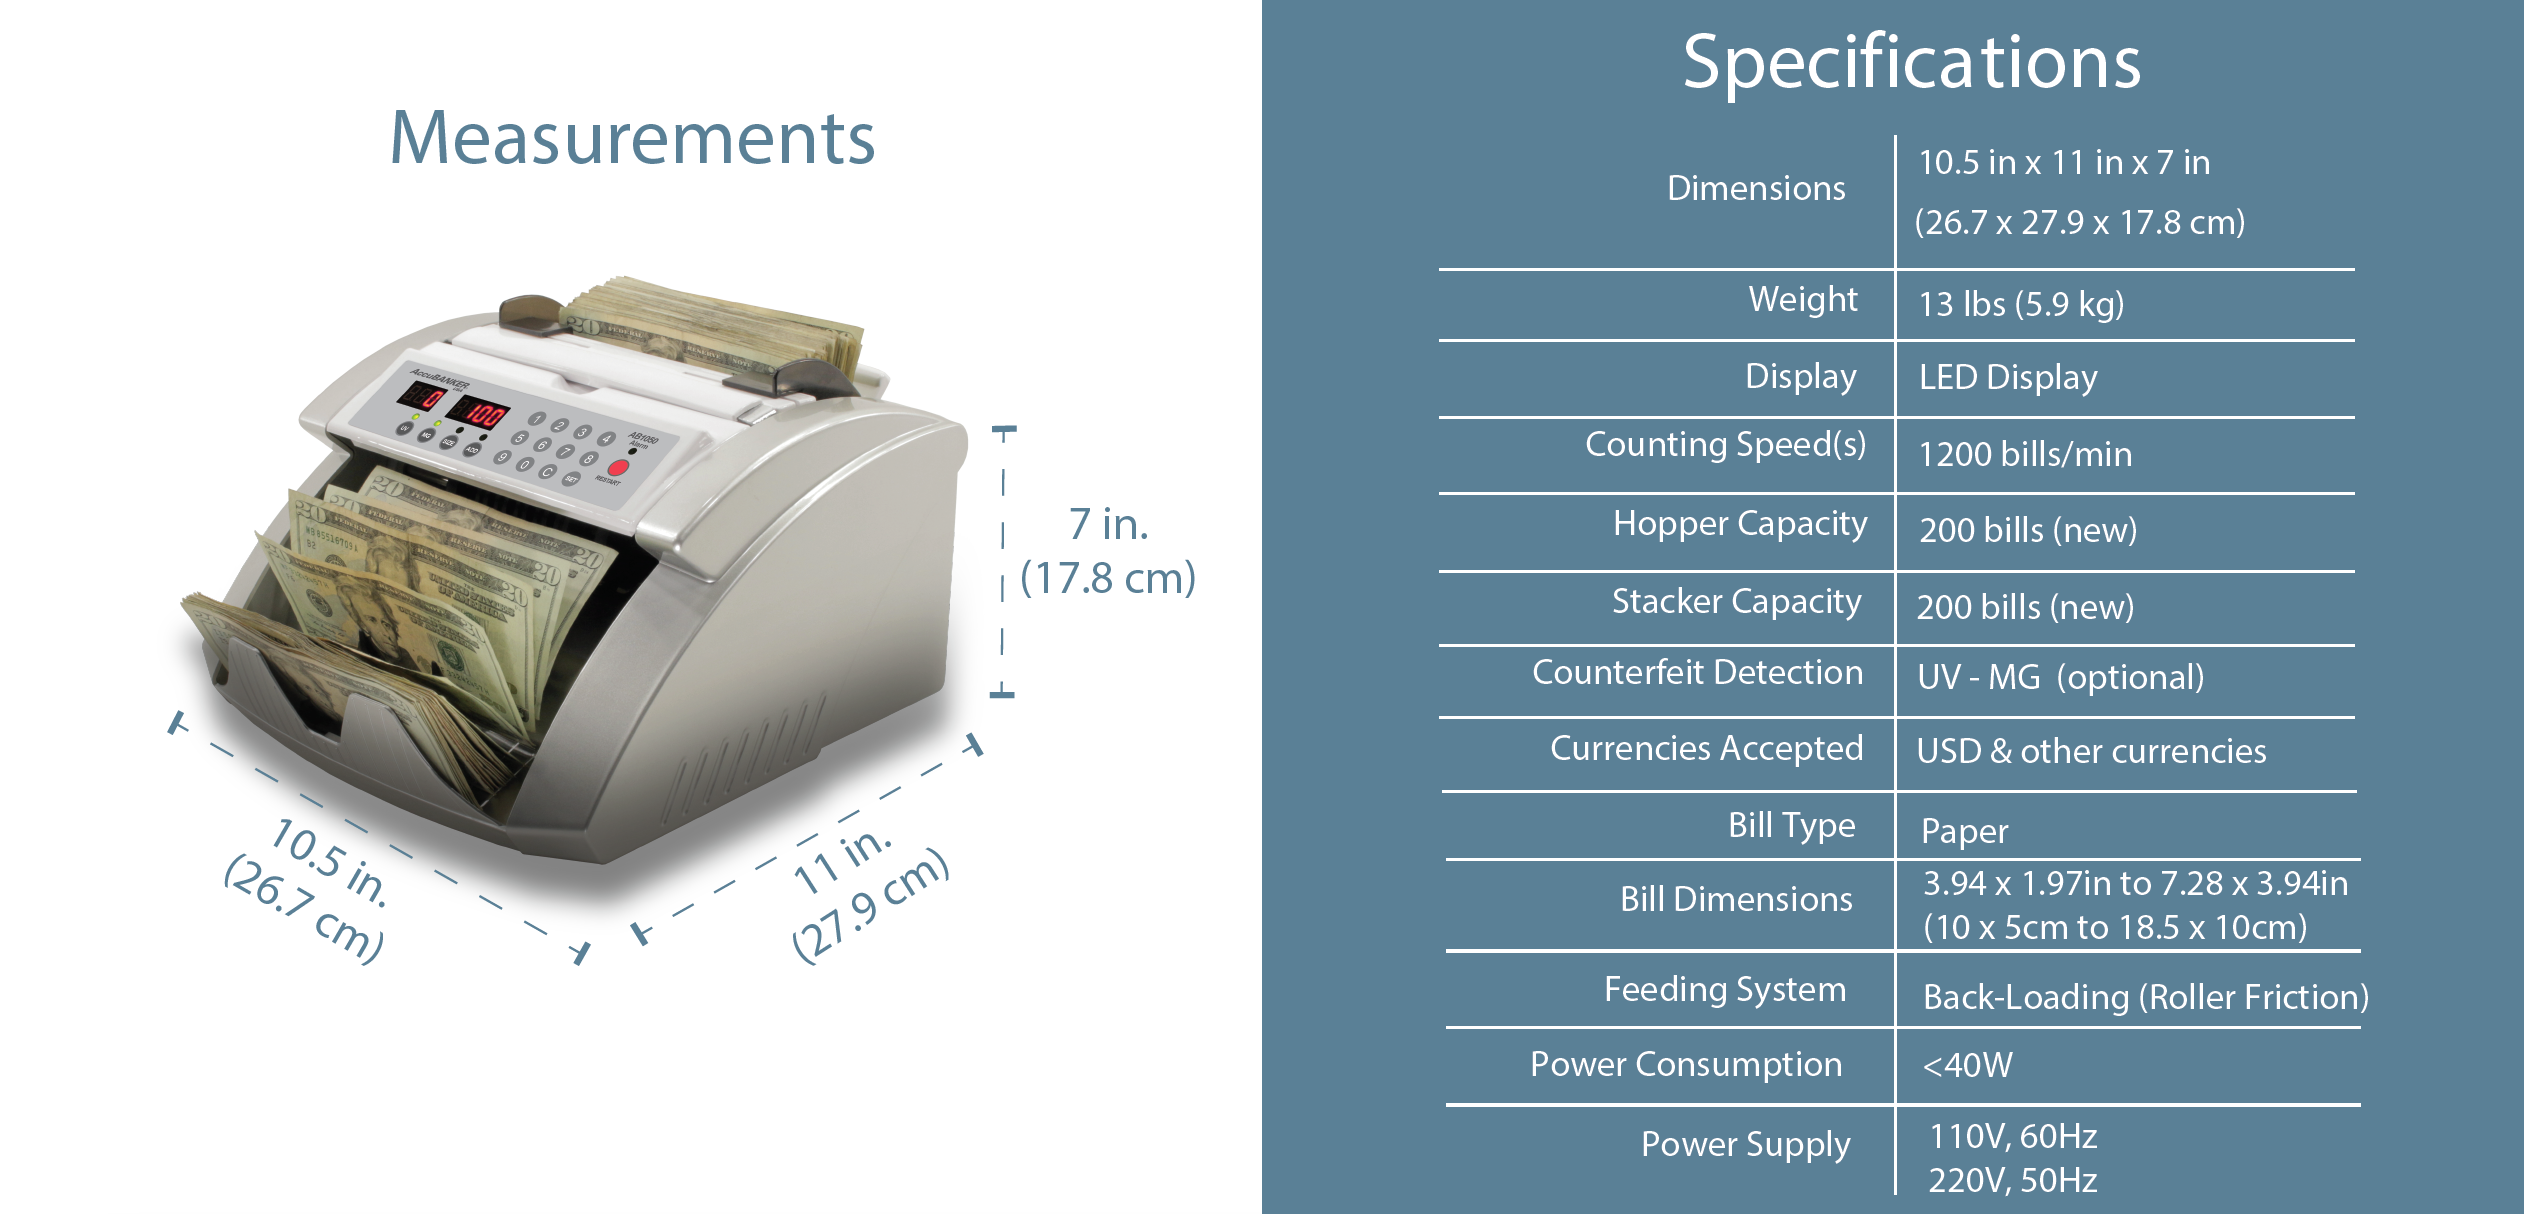 AB1050 Basic Bill Counter Features & Specifications